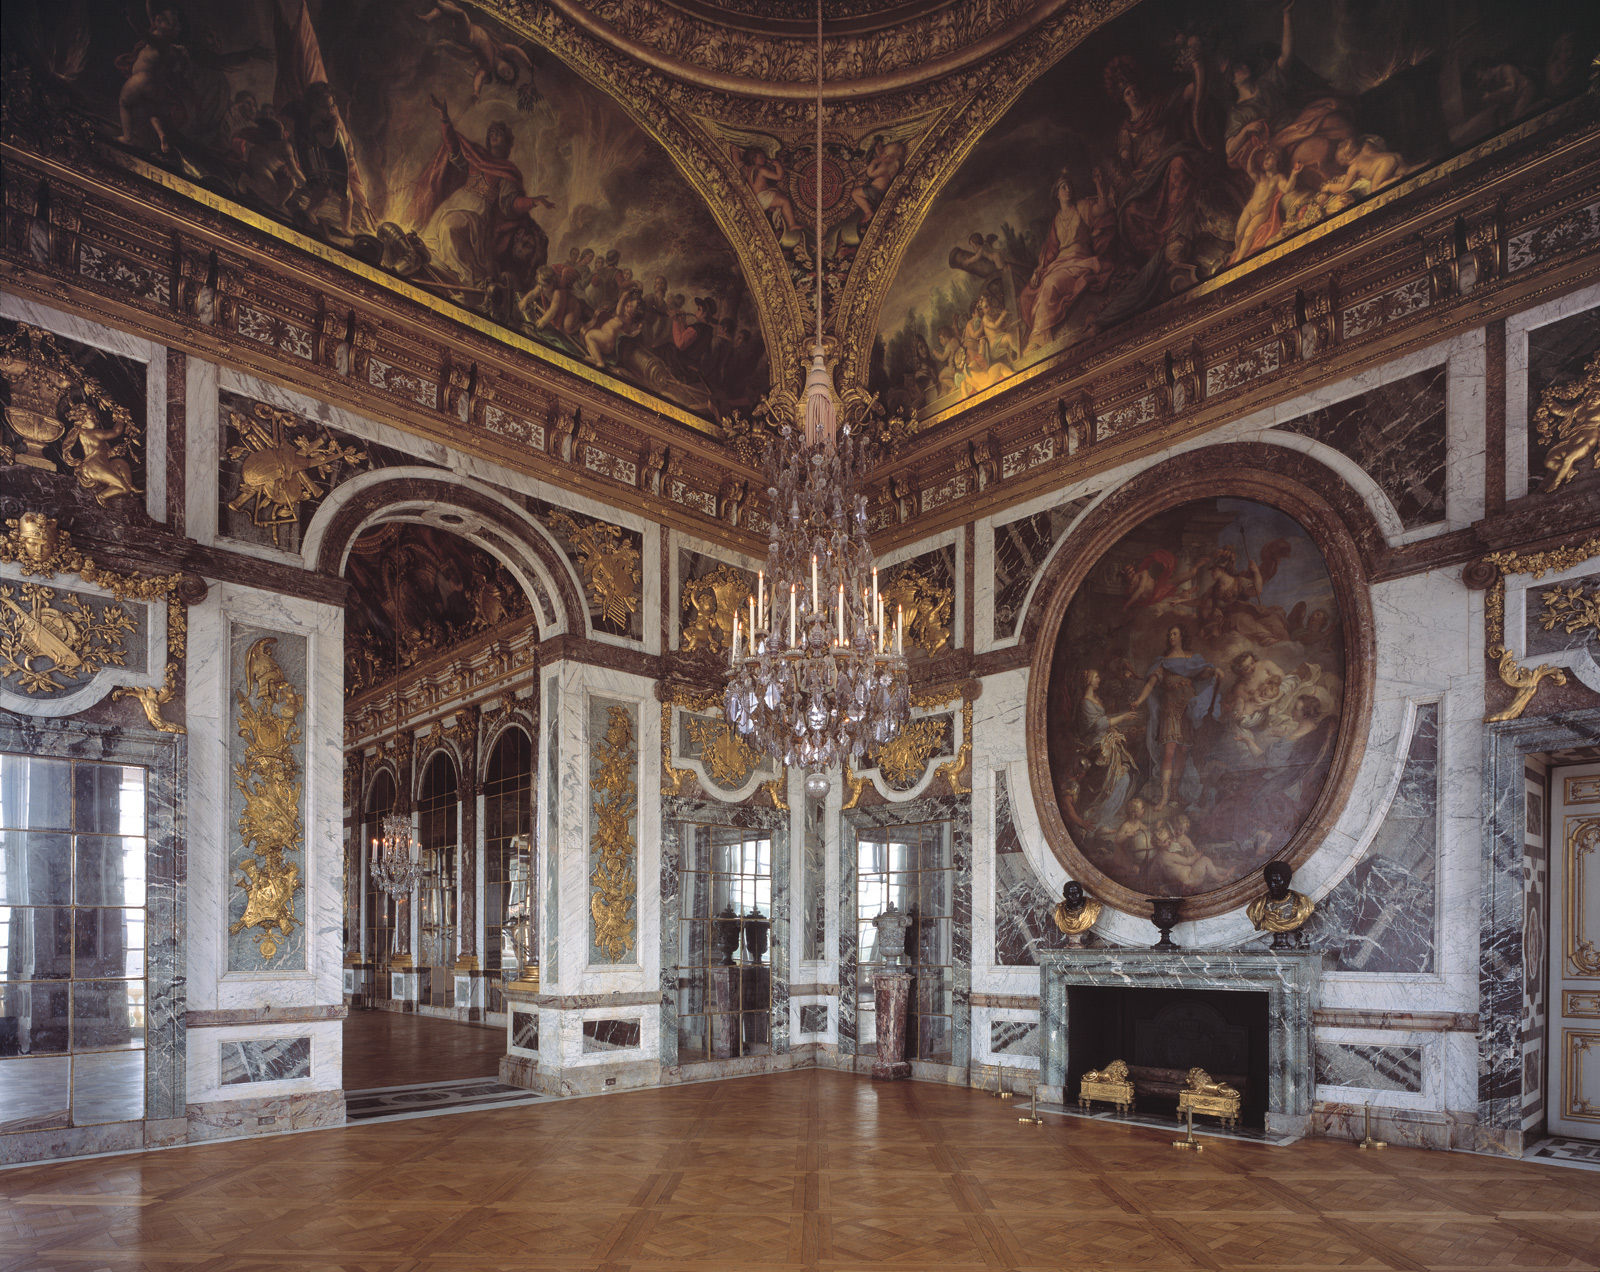 Ch teau de versailles salon de la paix reinhard g rner for Photo salon